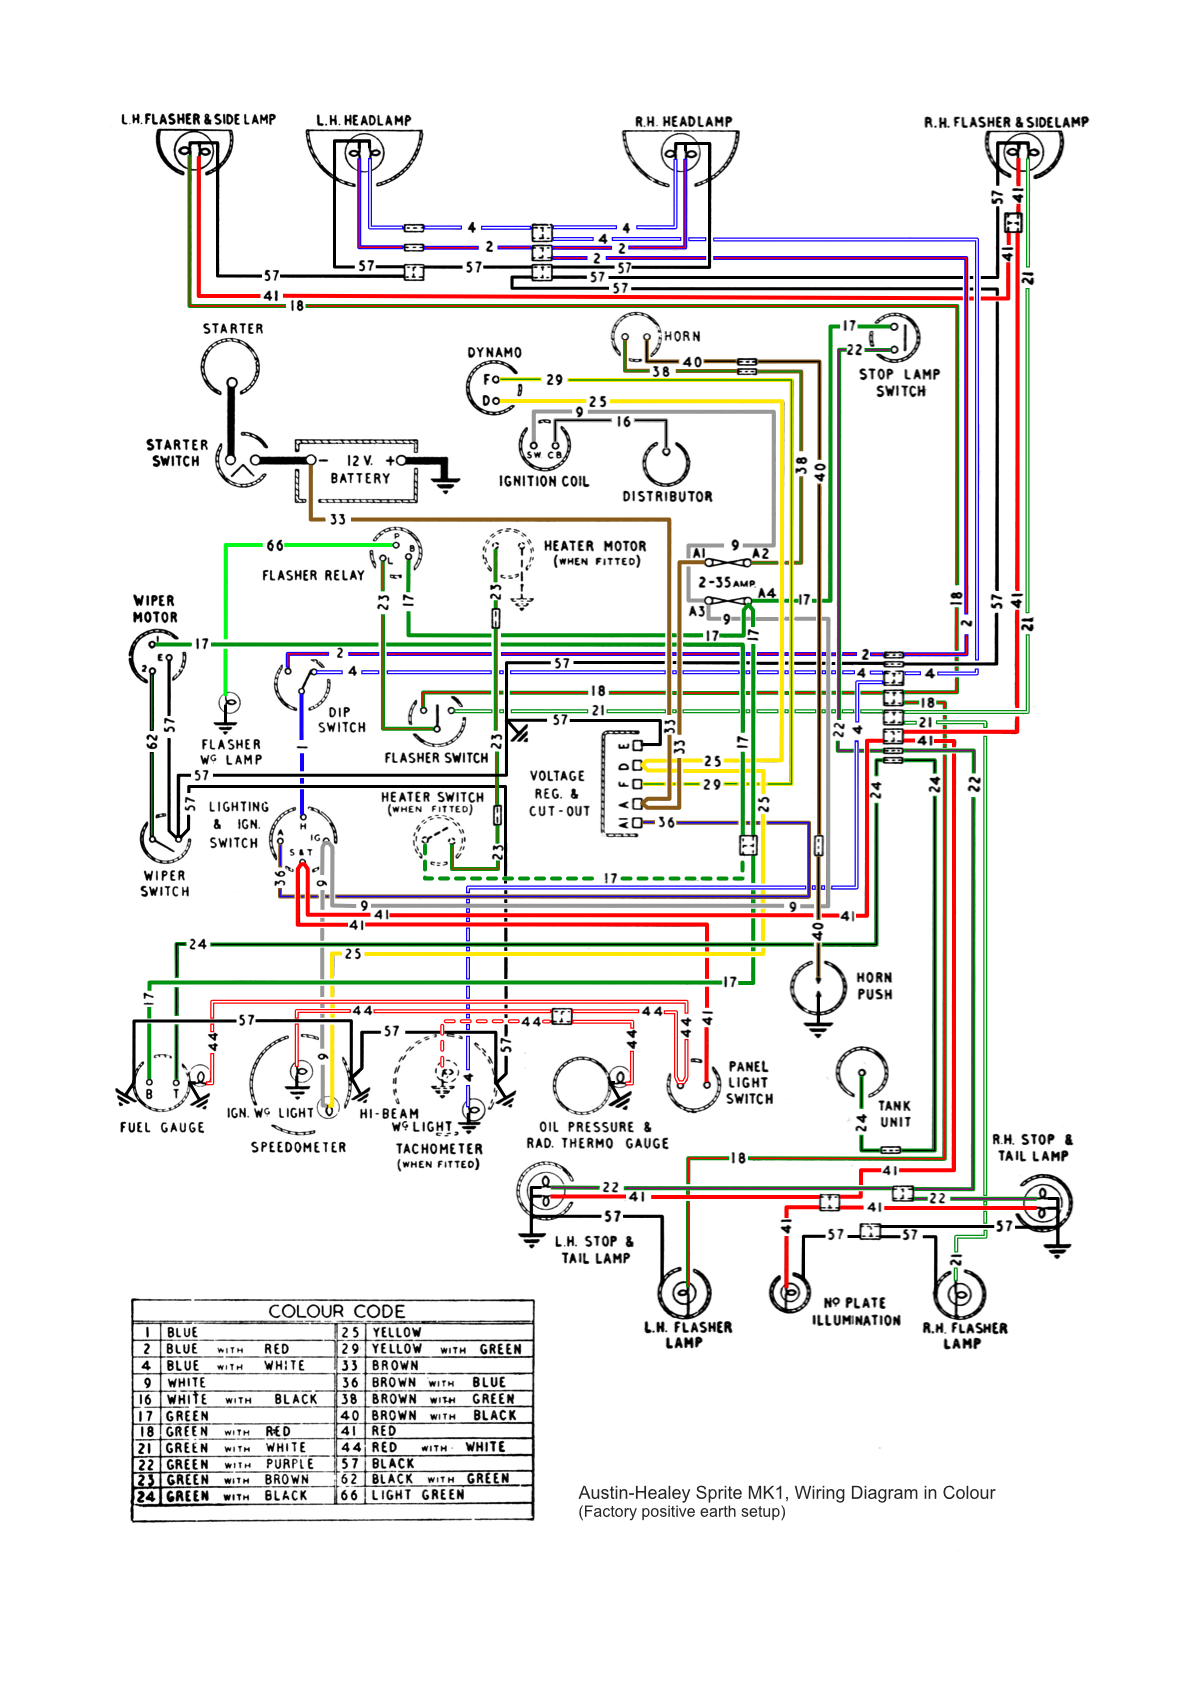 a correction to that color coded bugeye wiring diagram the sprite Daihatsu Rocky Wiring Diagram